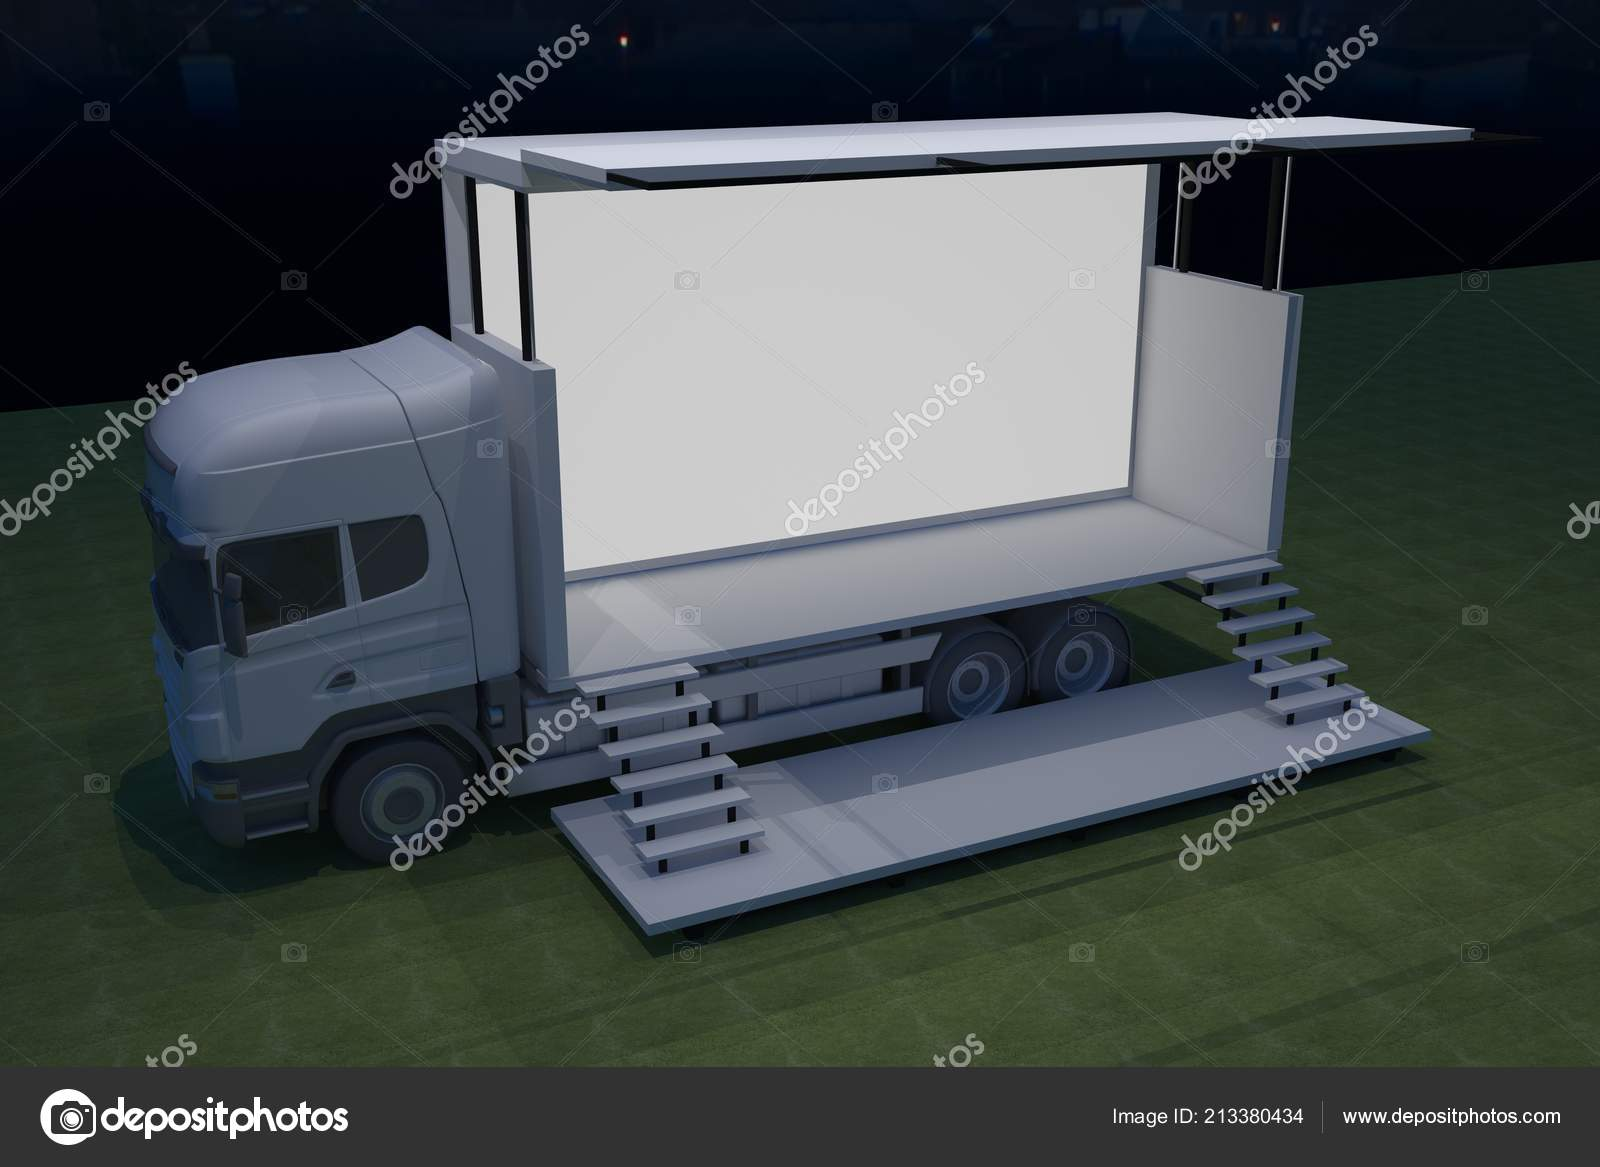 Exterior Truck Mobile Stage Event Led Light Night Staging